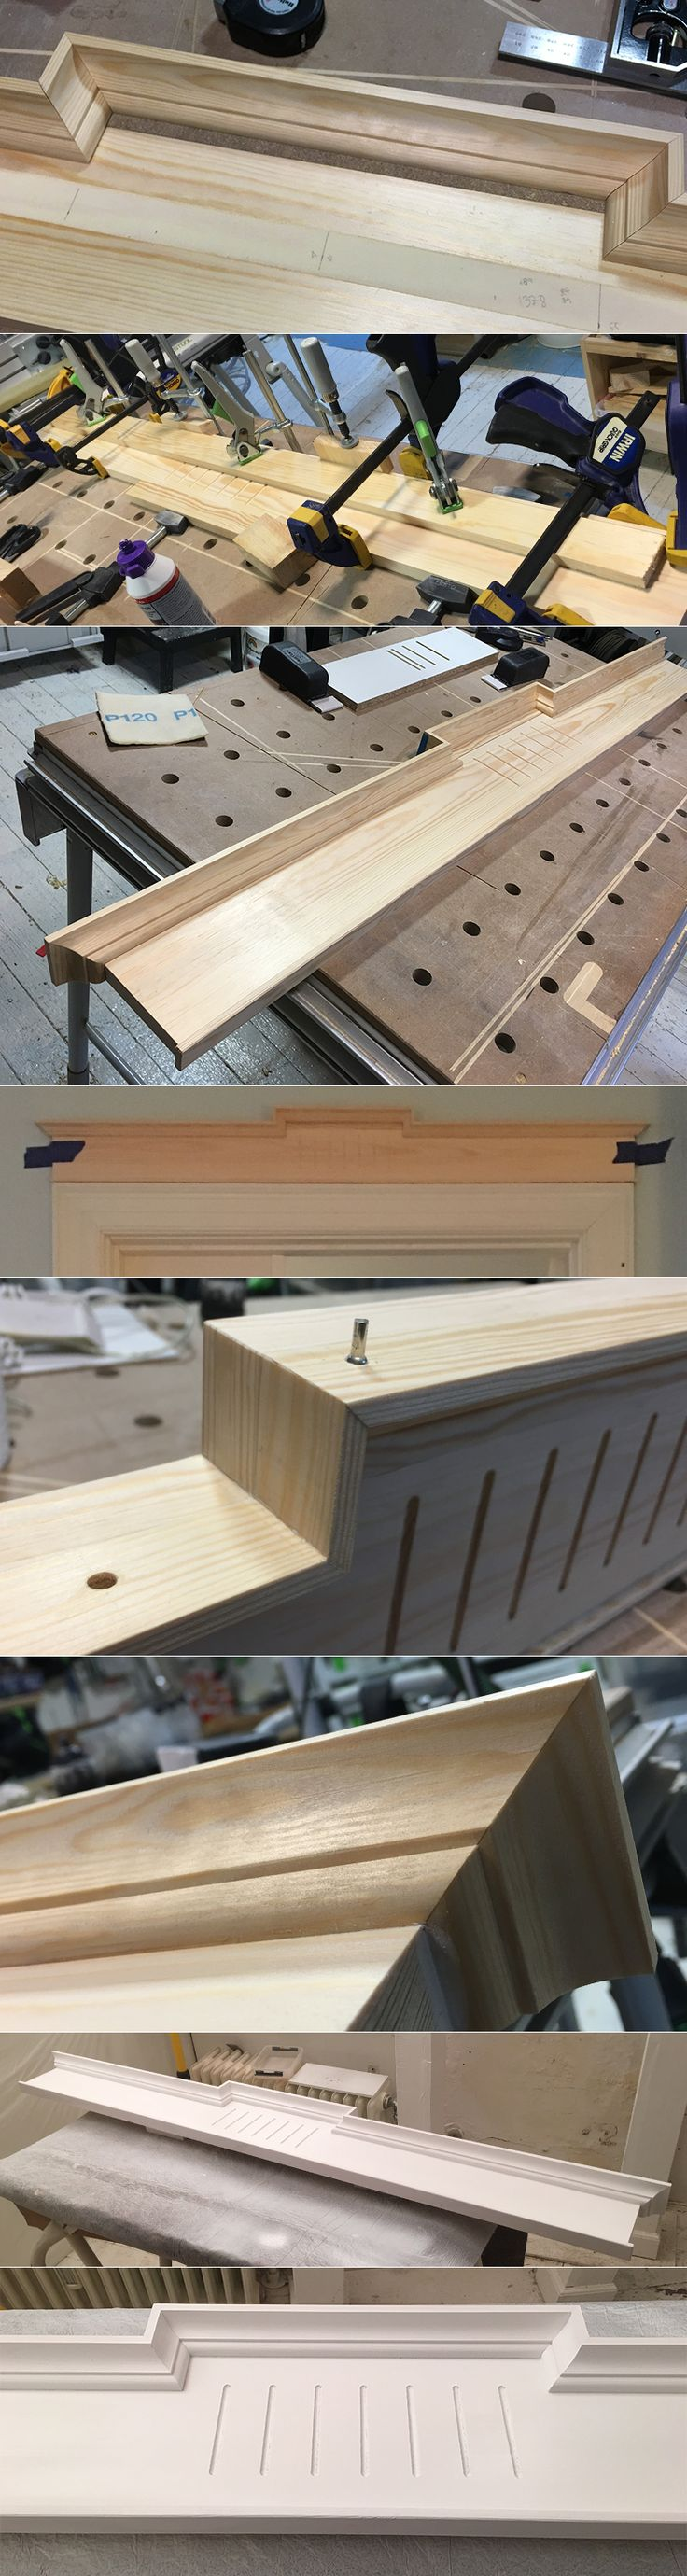 I'm dreaming of a classic decorative door piece for our Frederiksberg apartment. Finding the balance in the design using most of my skills in the my woodshop and all Festool tools. Kapex, domino, router table and eccentric sander. And learning to spray paint :-) #woodshop #festool #customdesign